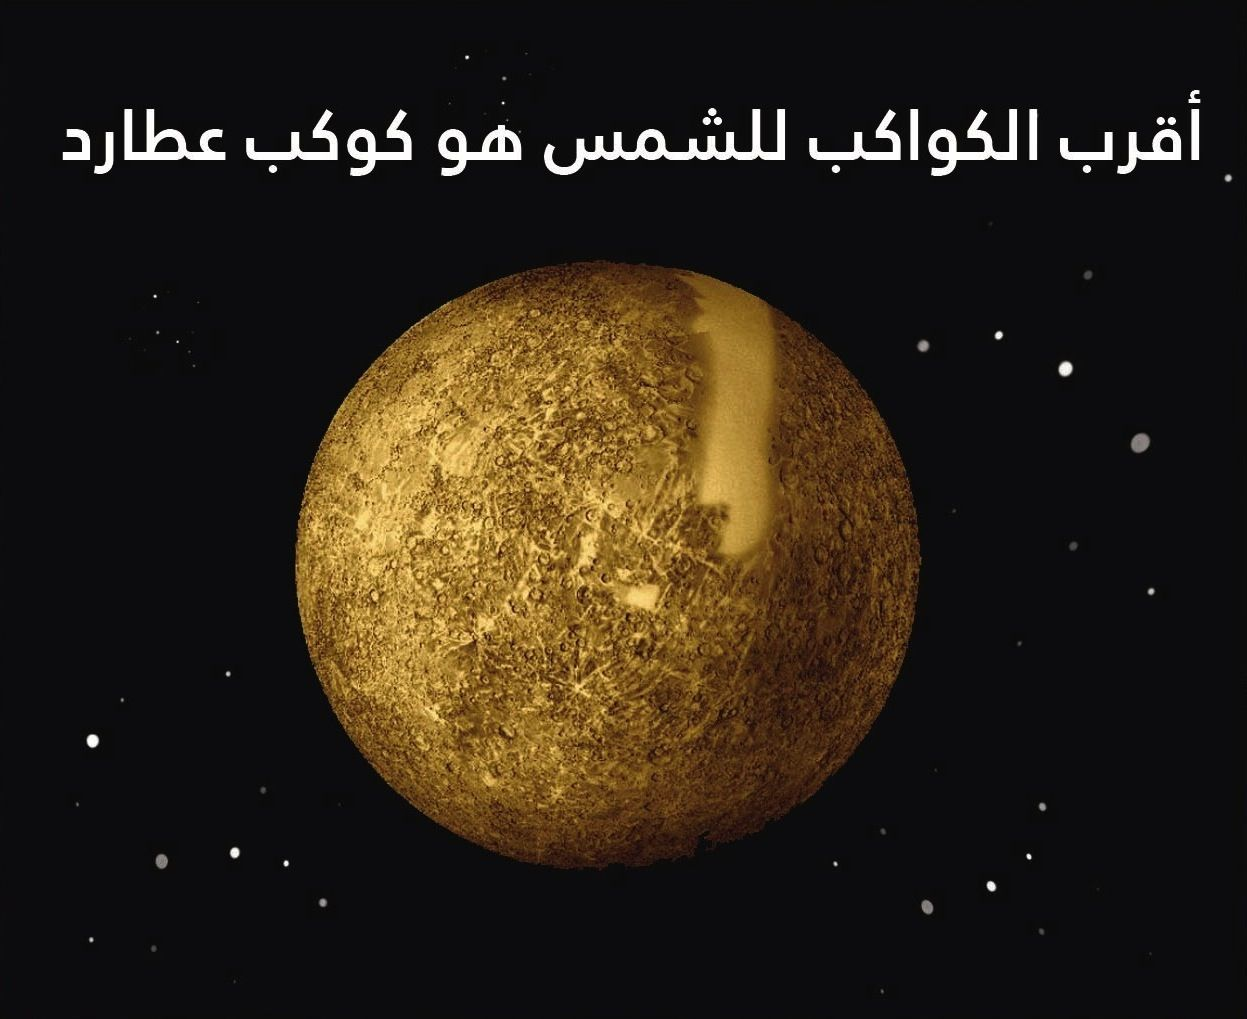 Mercury Is The Smallest And Closest To The Sun Learning Planets With Einstylo Because We Love Learning Planets Celestial Learning